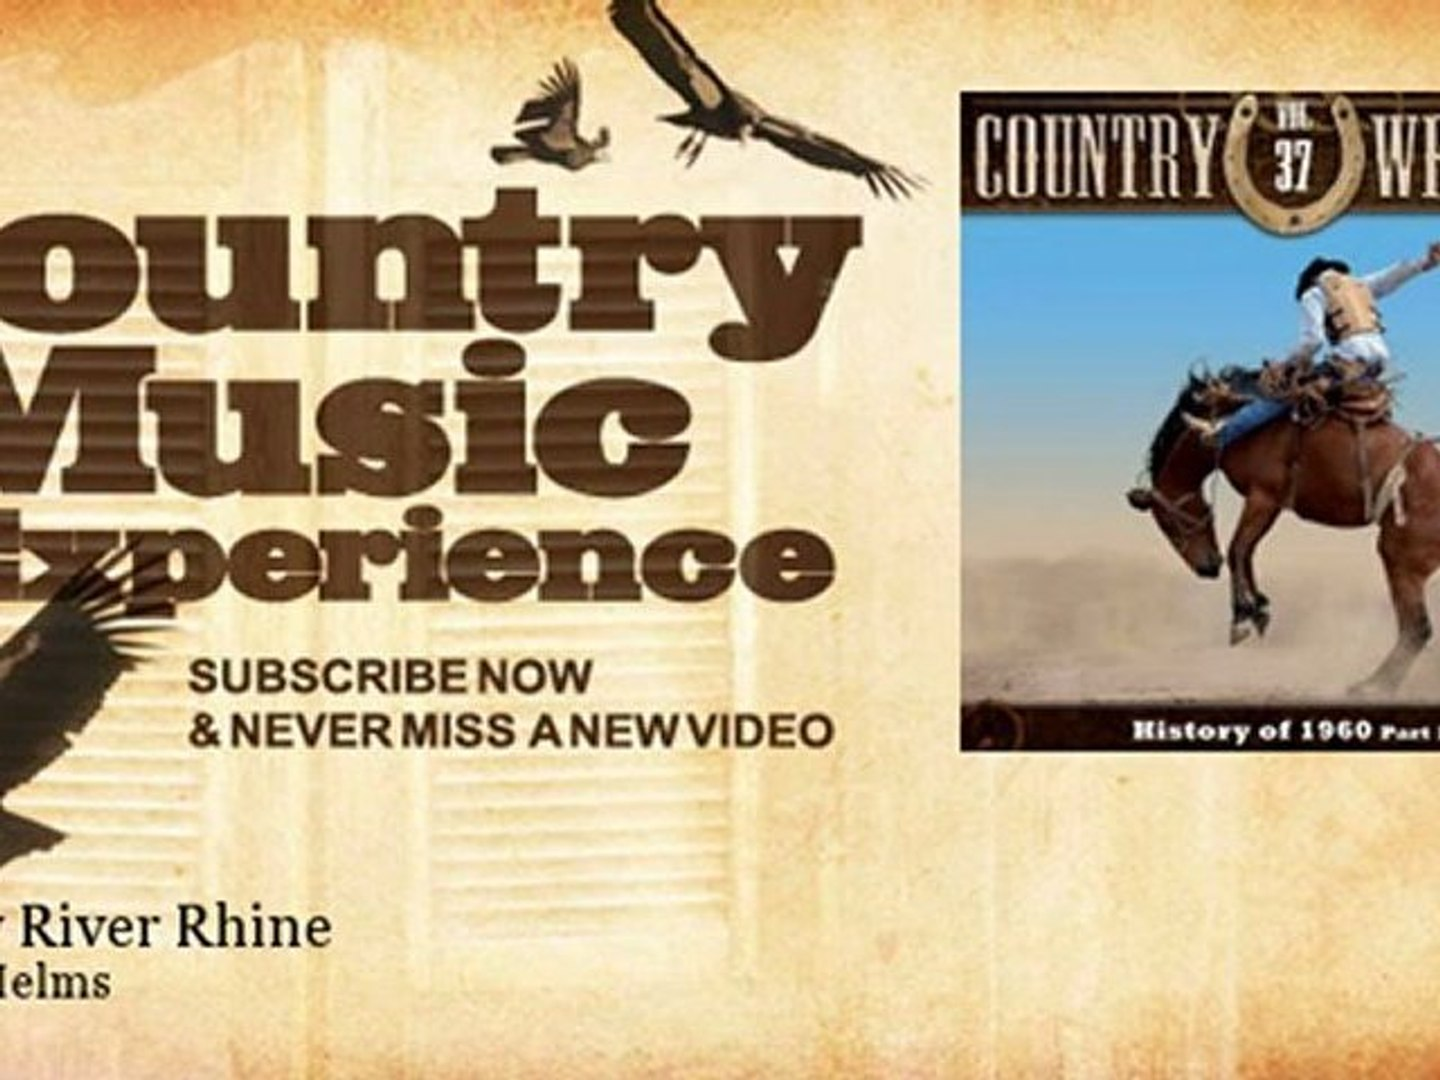 Bobby Helms - Lonely River Rhine - Country Music Experience